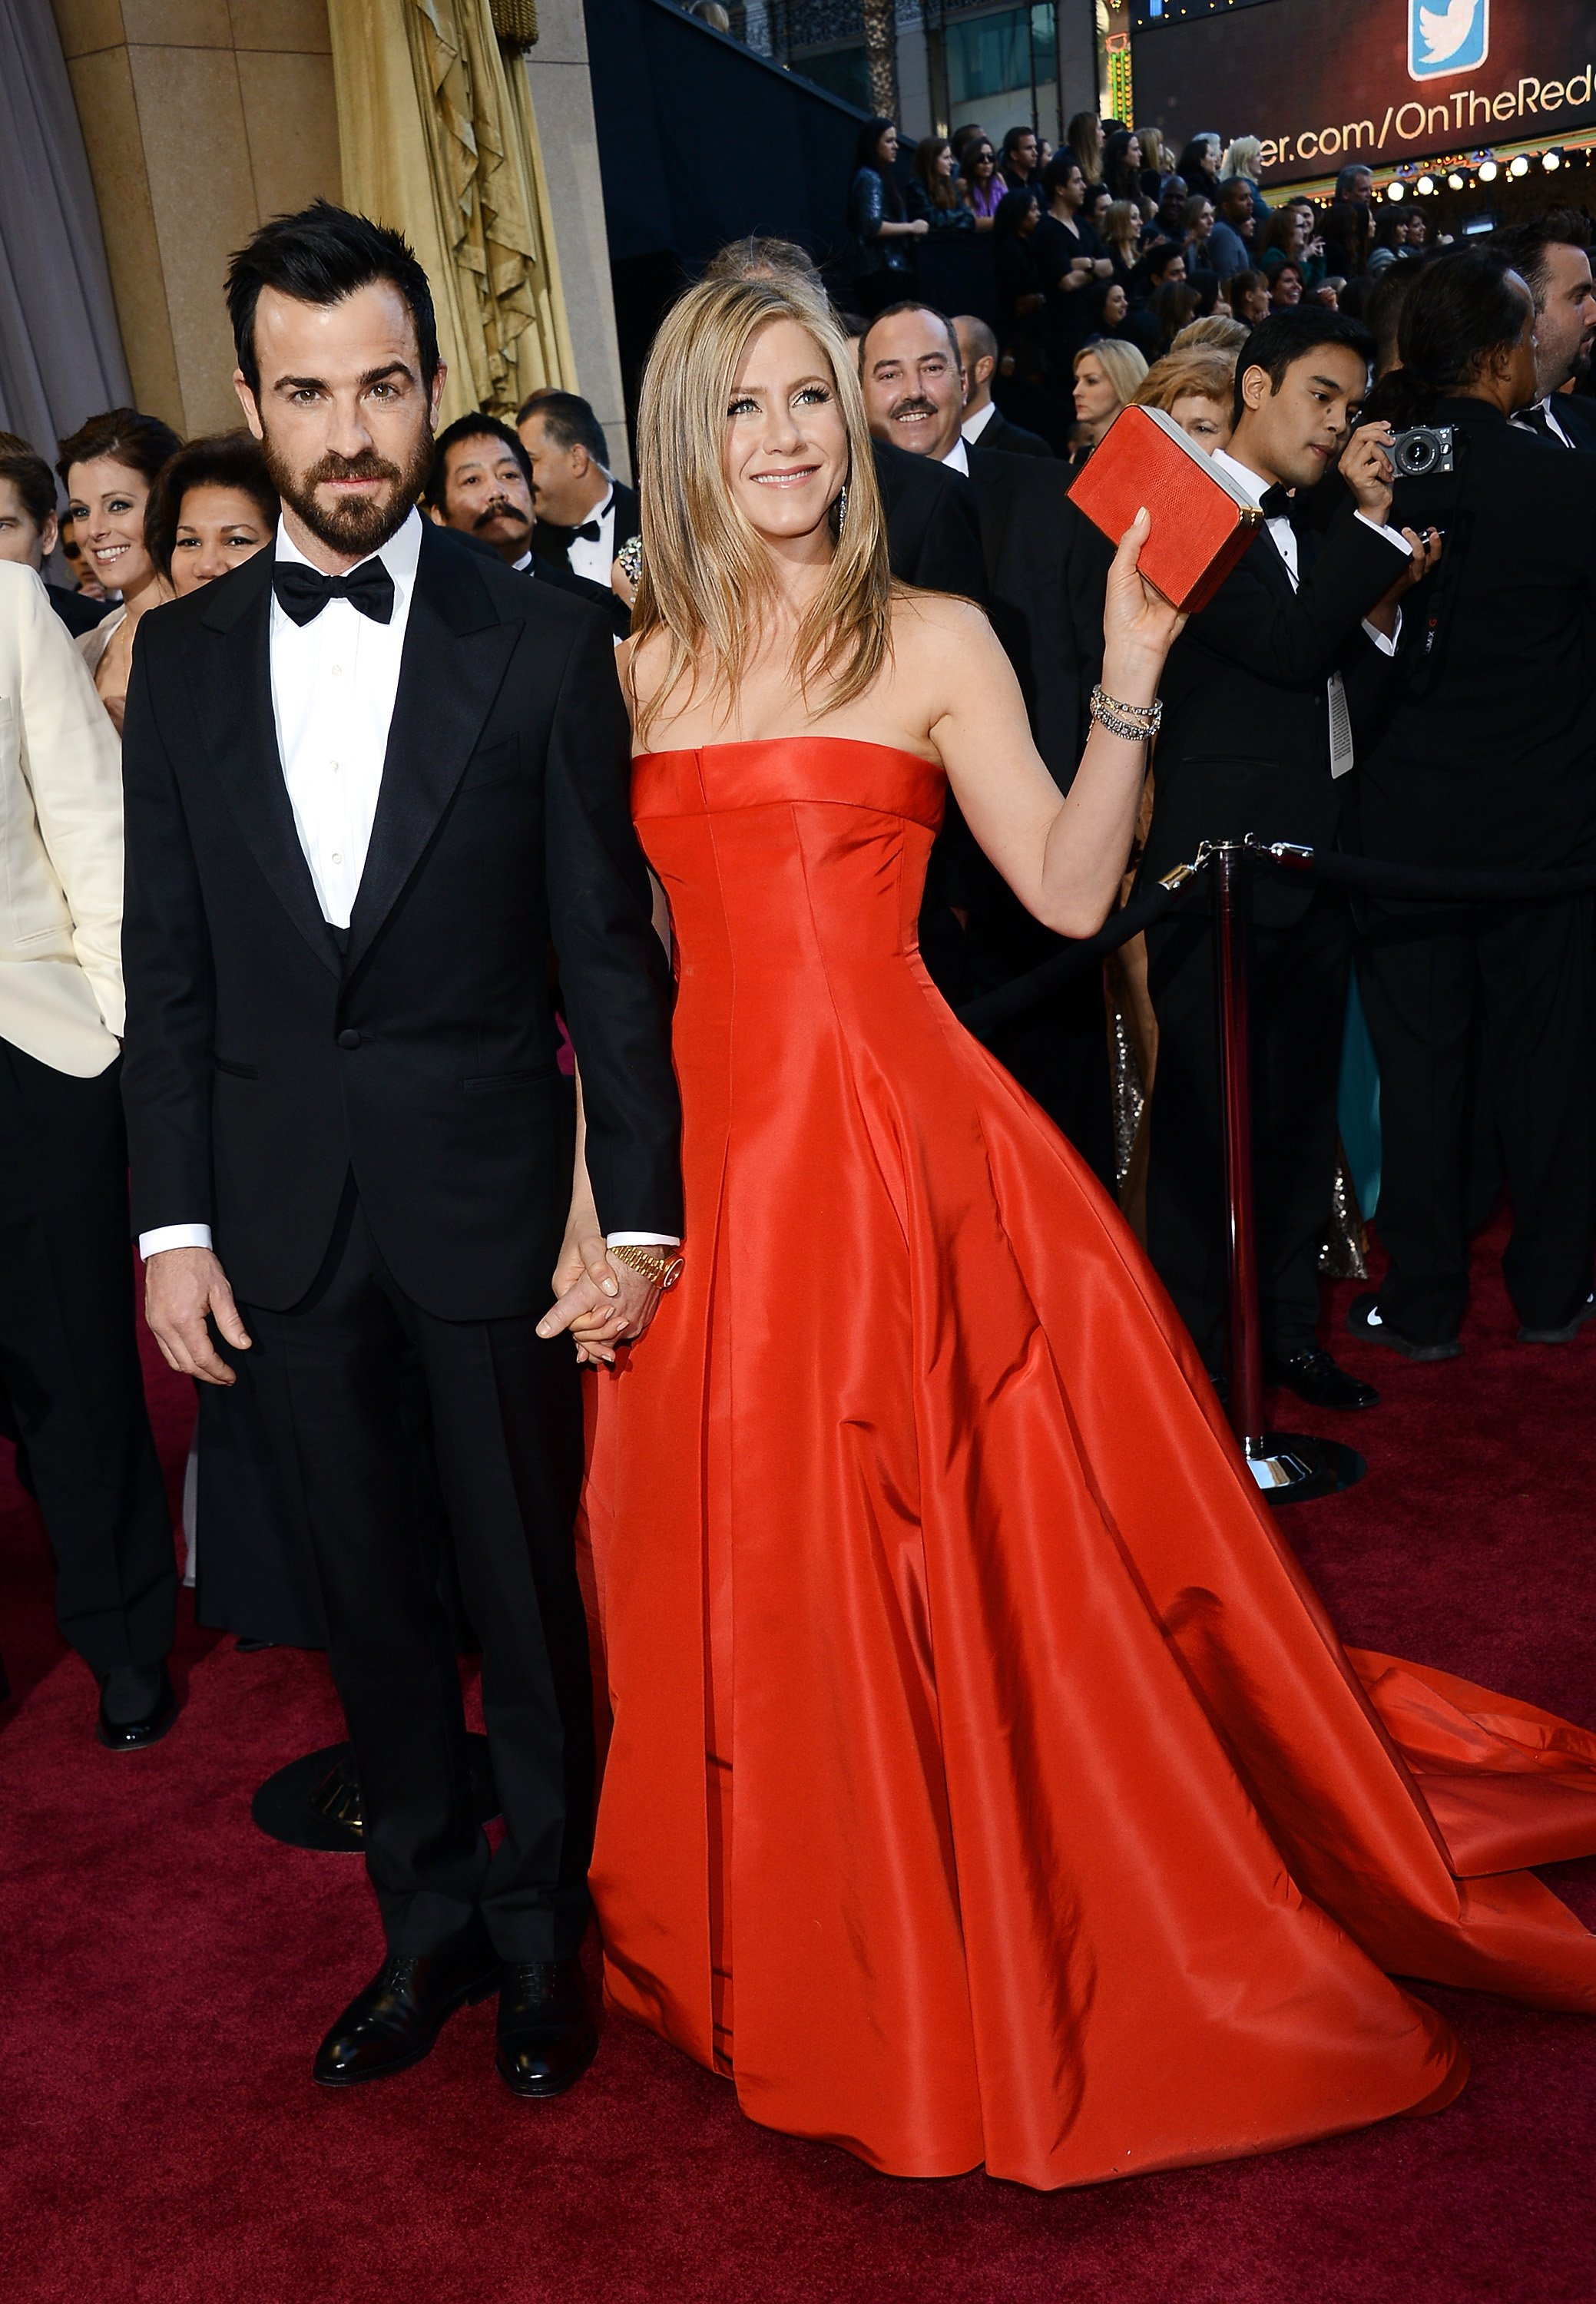 Justin Theroux and Jennifer Aniston arrive at the Oscars at Hollywood & Highland Center on February 24, 2013, in Hollywood, California. | Source: Getty Images.